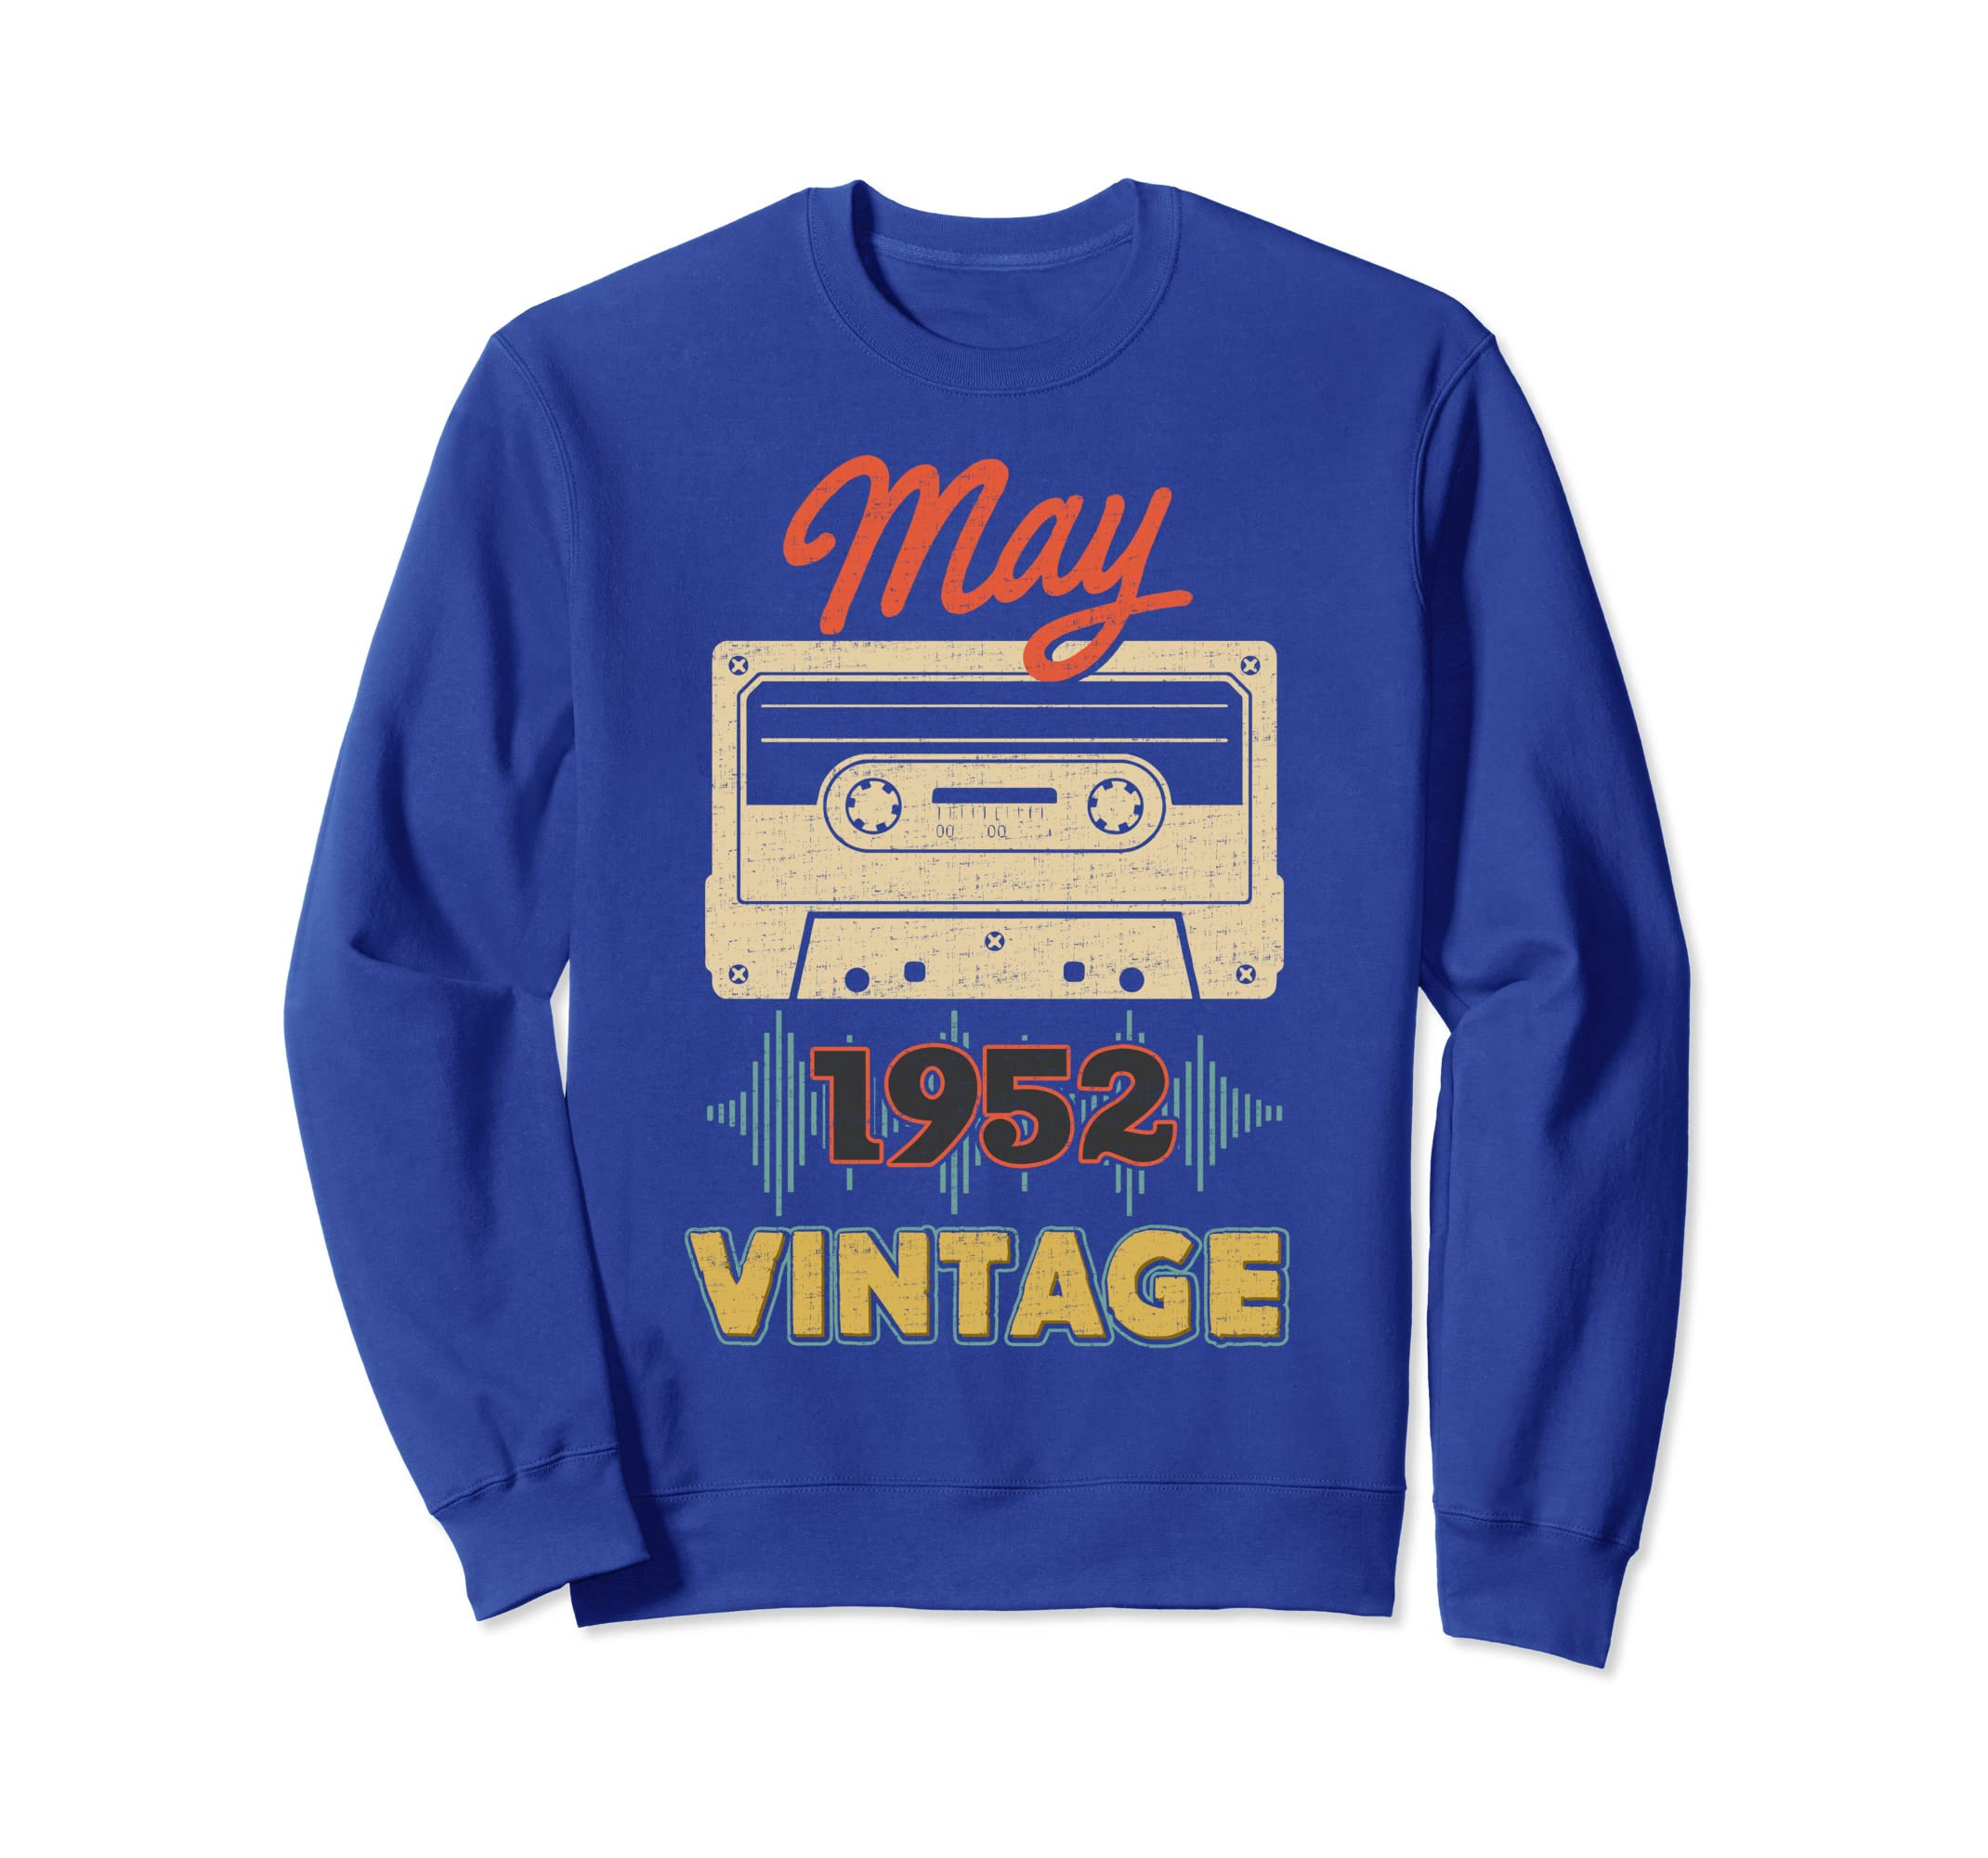 Vintage-May 1952 Classic Retro-Mixtape Sweatshirt-azvn